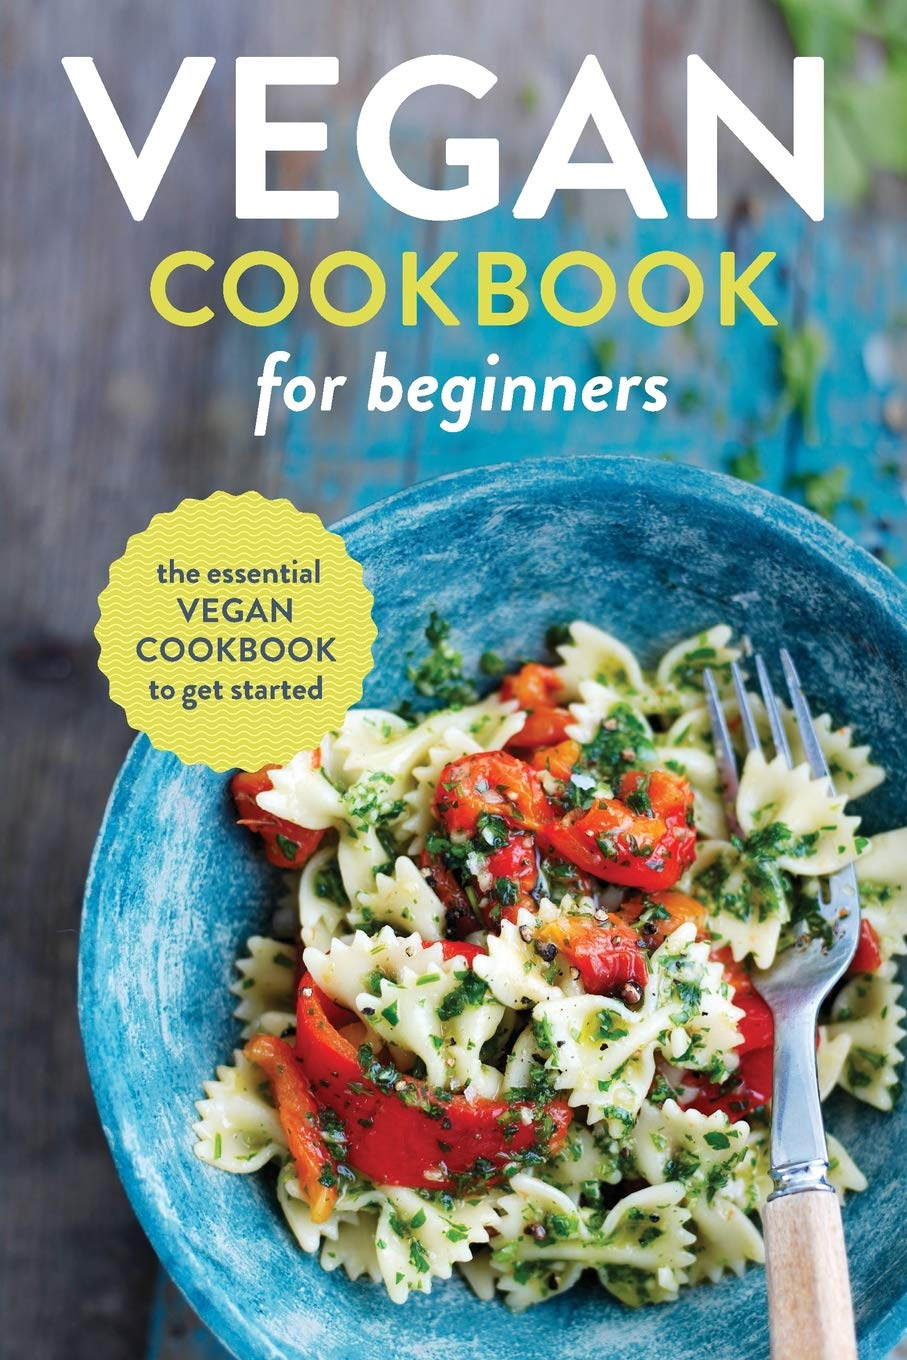 Vegan Cookbook for Beginners: The Essential Vegan Cookbook To Get Started - Tolerant Planet